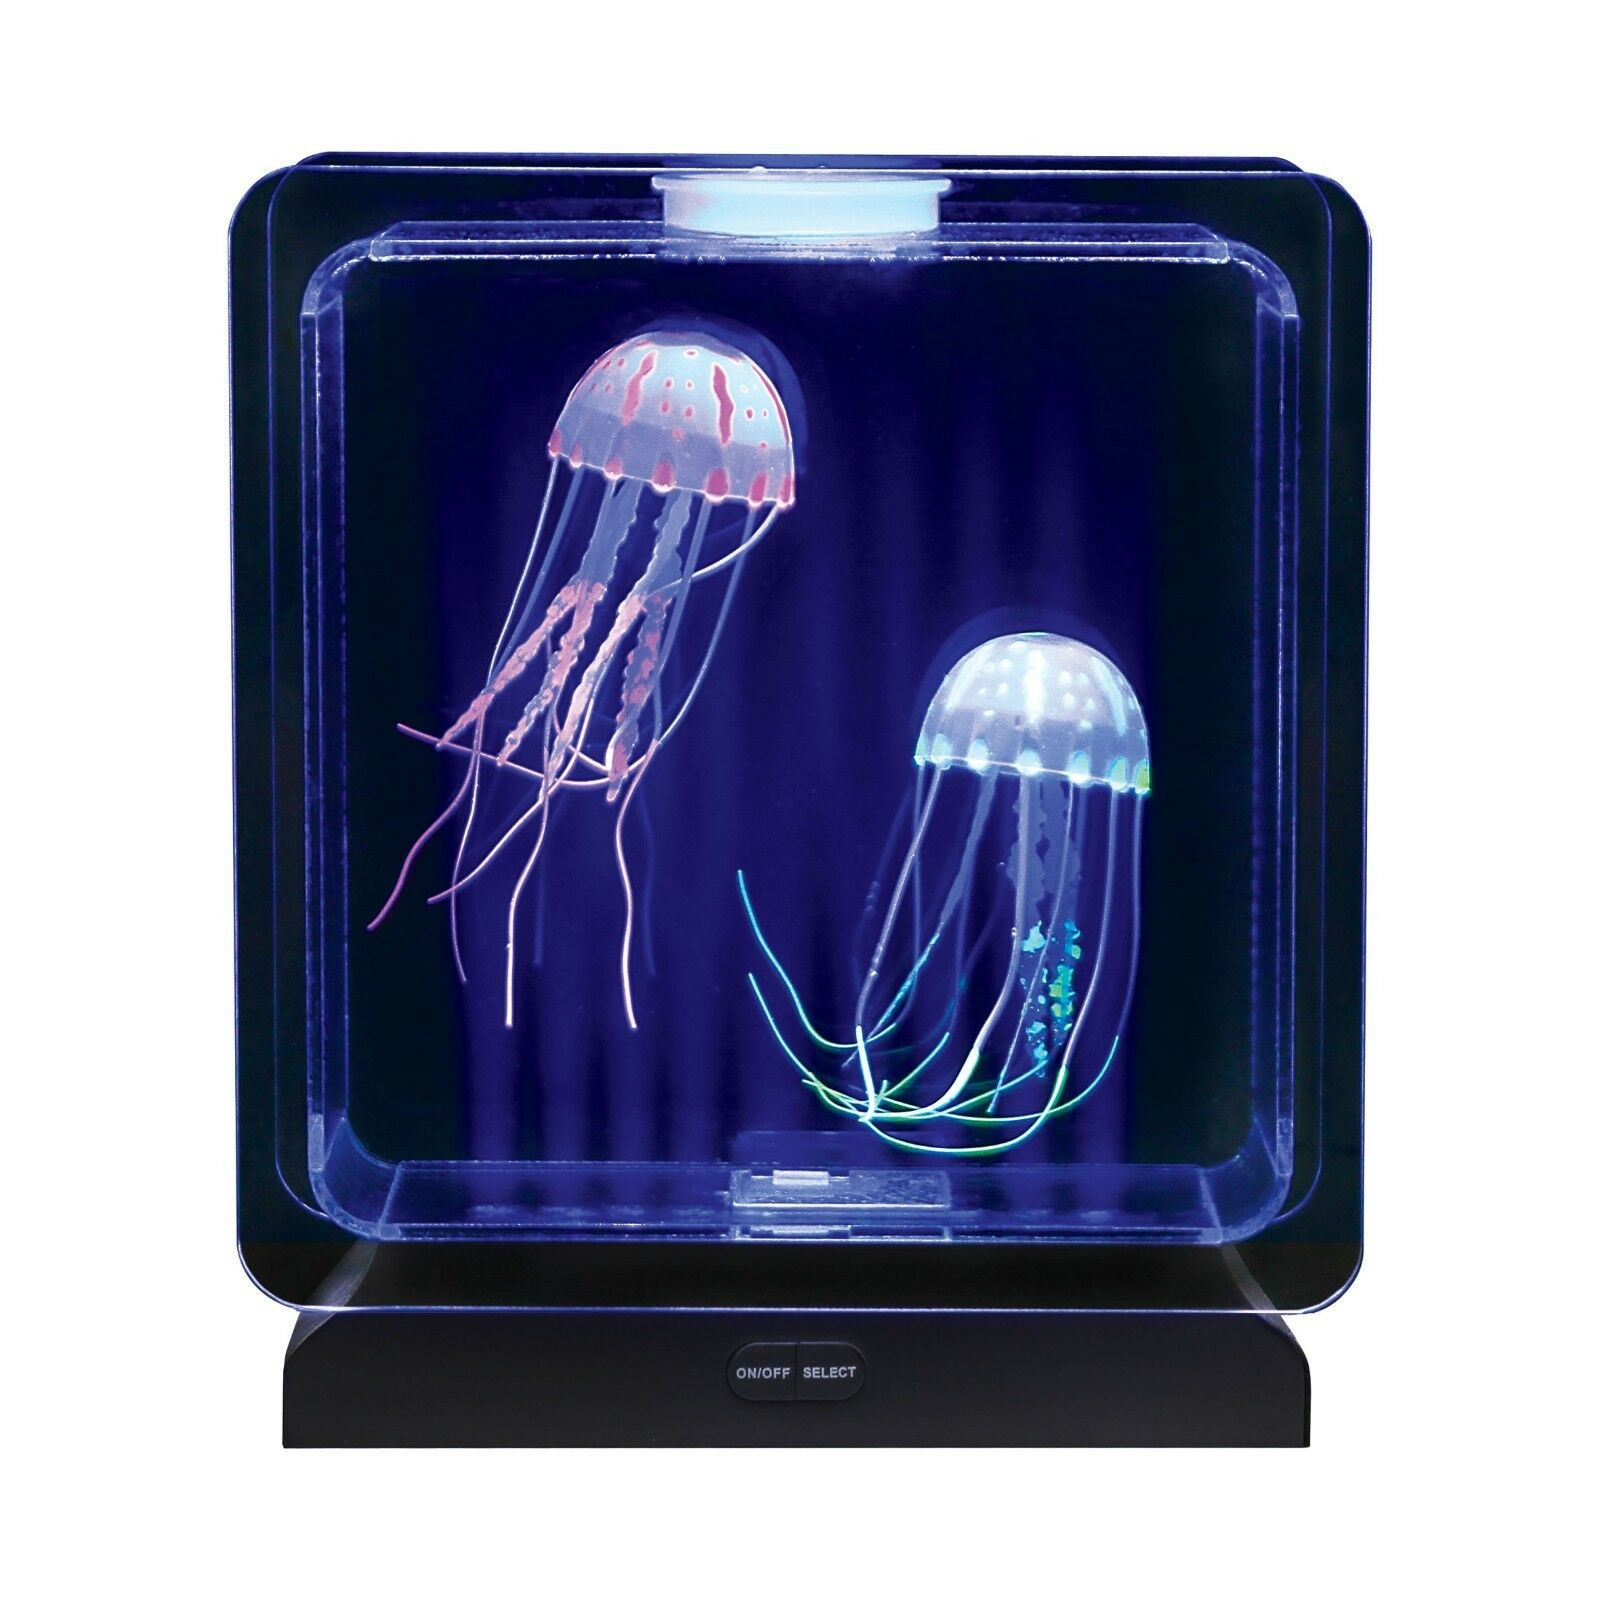 Square Jellyfish Light Up Tank For Visual Stimulation, Special Needs, Relaxation